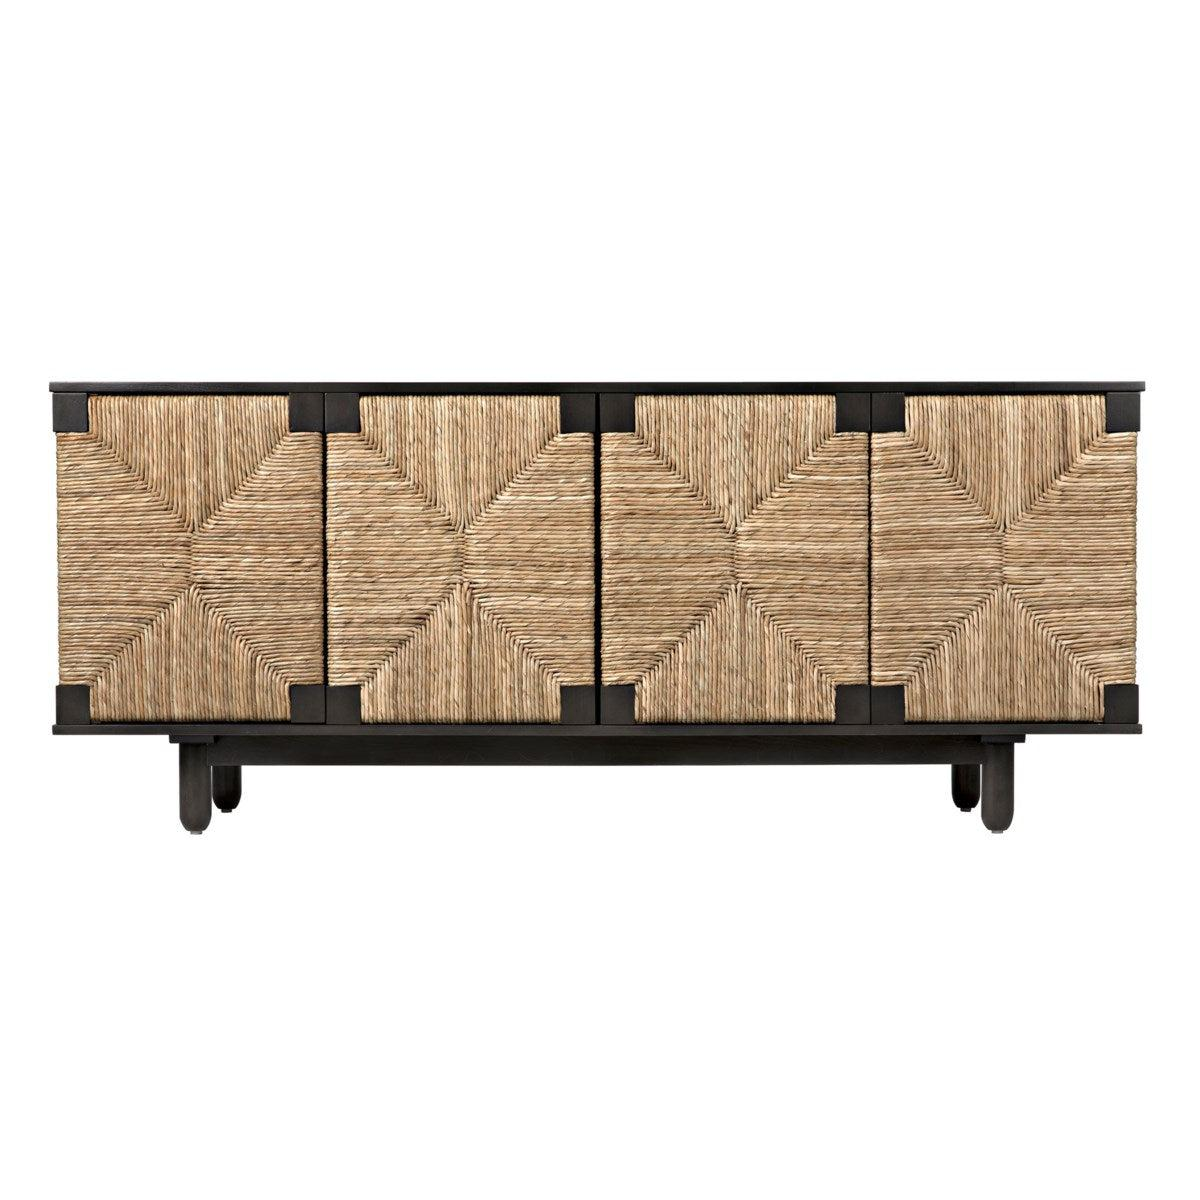 Noir Brook 4 Door Sideboard, Pale-Noir Furniture-Blue Hand Home